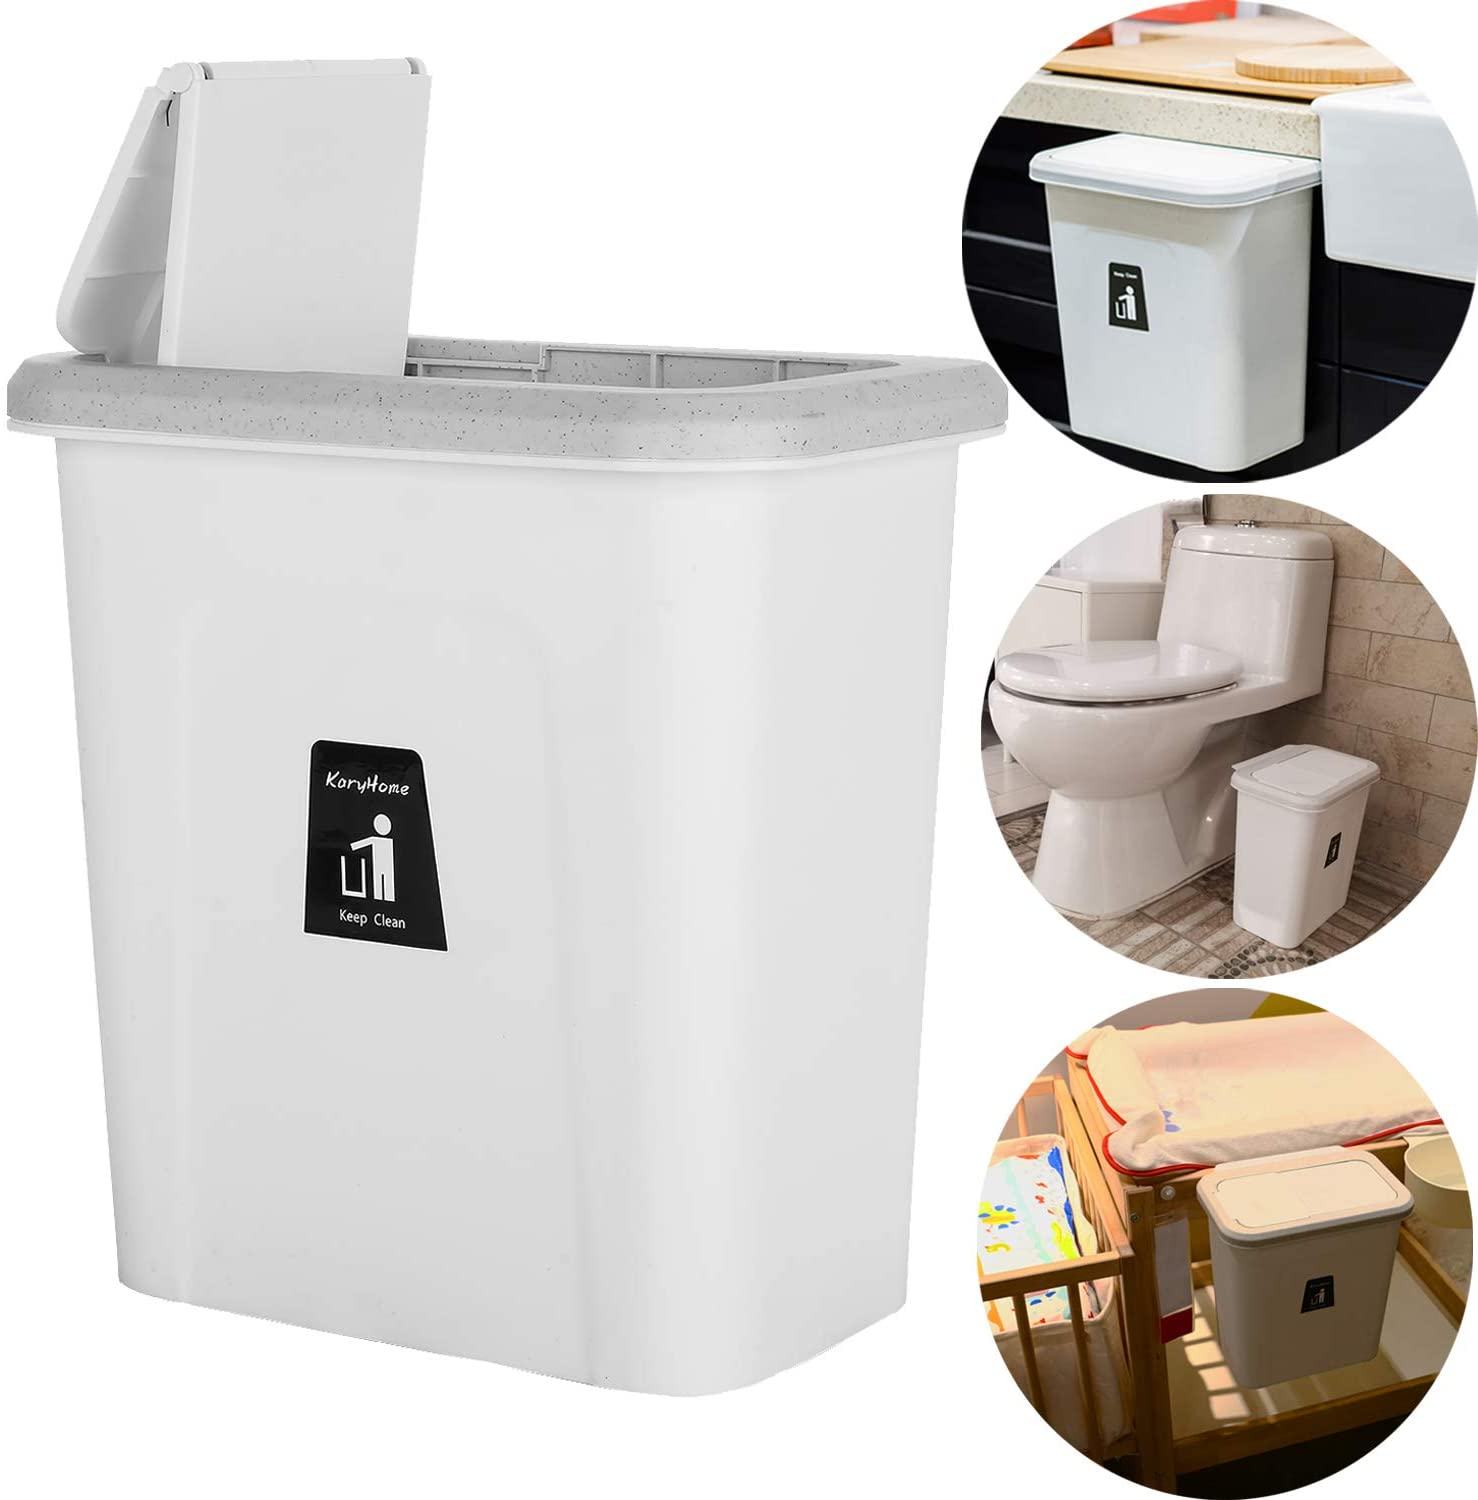 KaryHome Small Trash Can